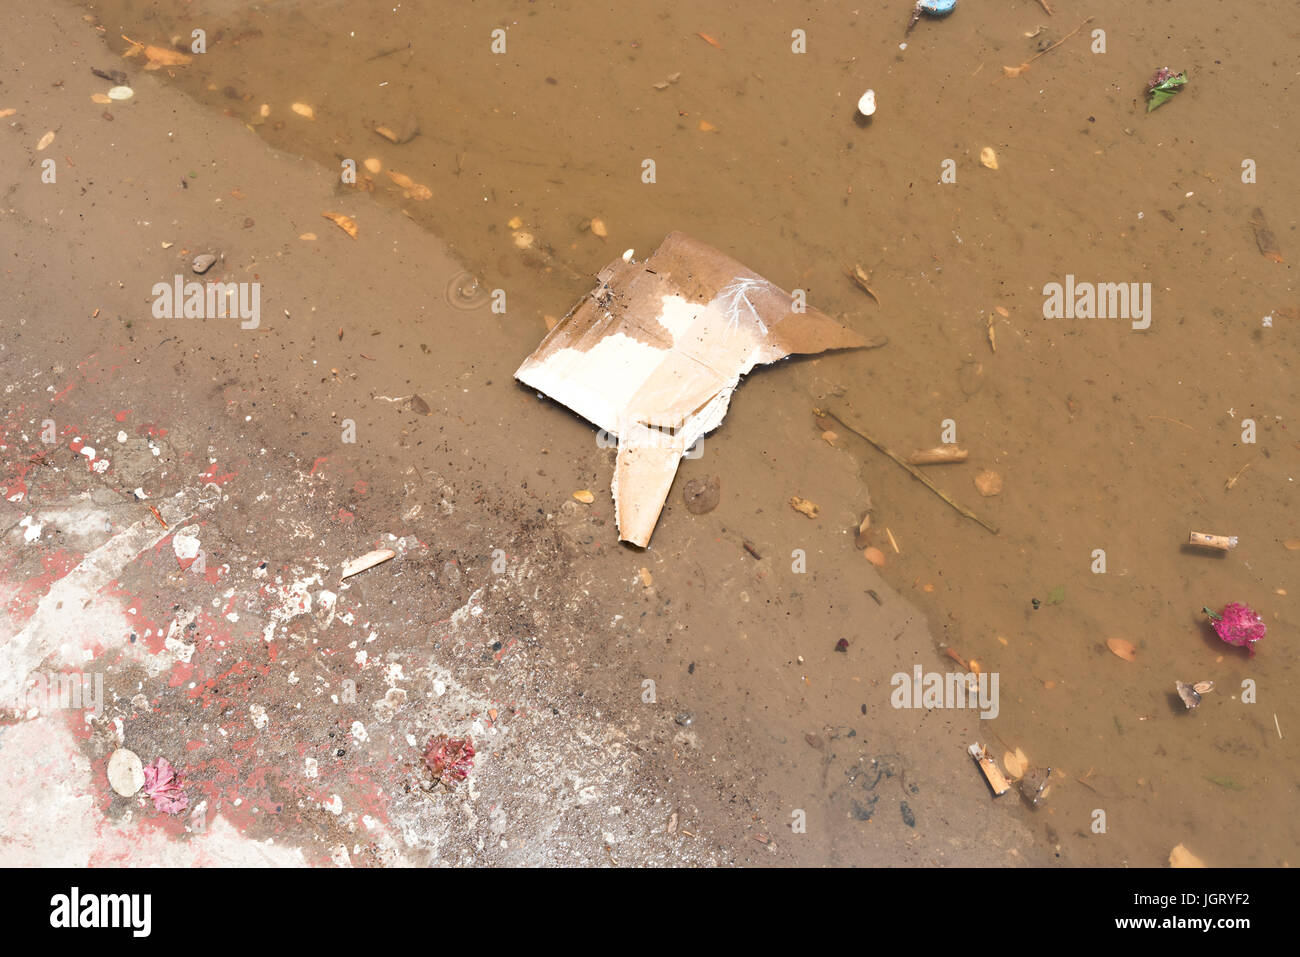 Background of Stagnant dirty rain water on roadside in Djibouti, East Africa Stock Photo